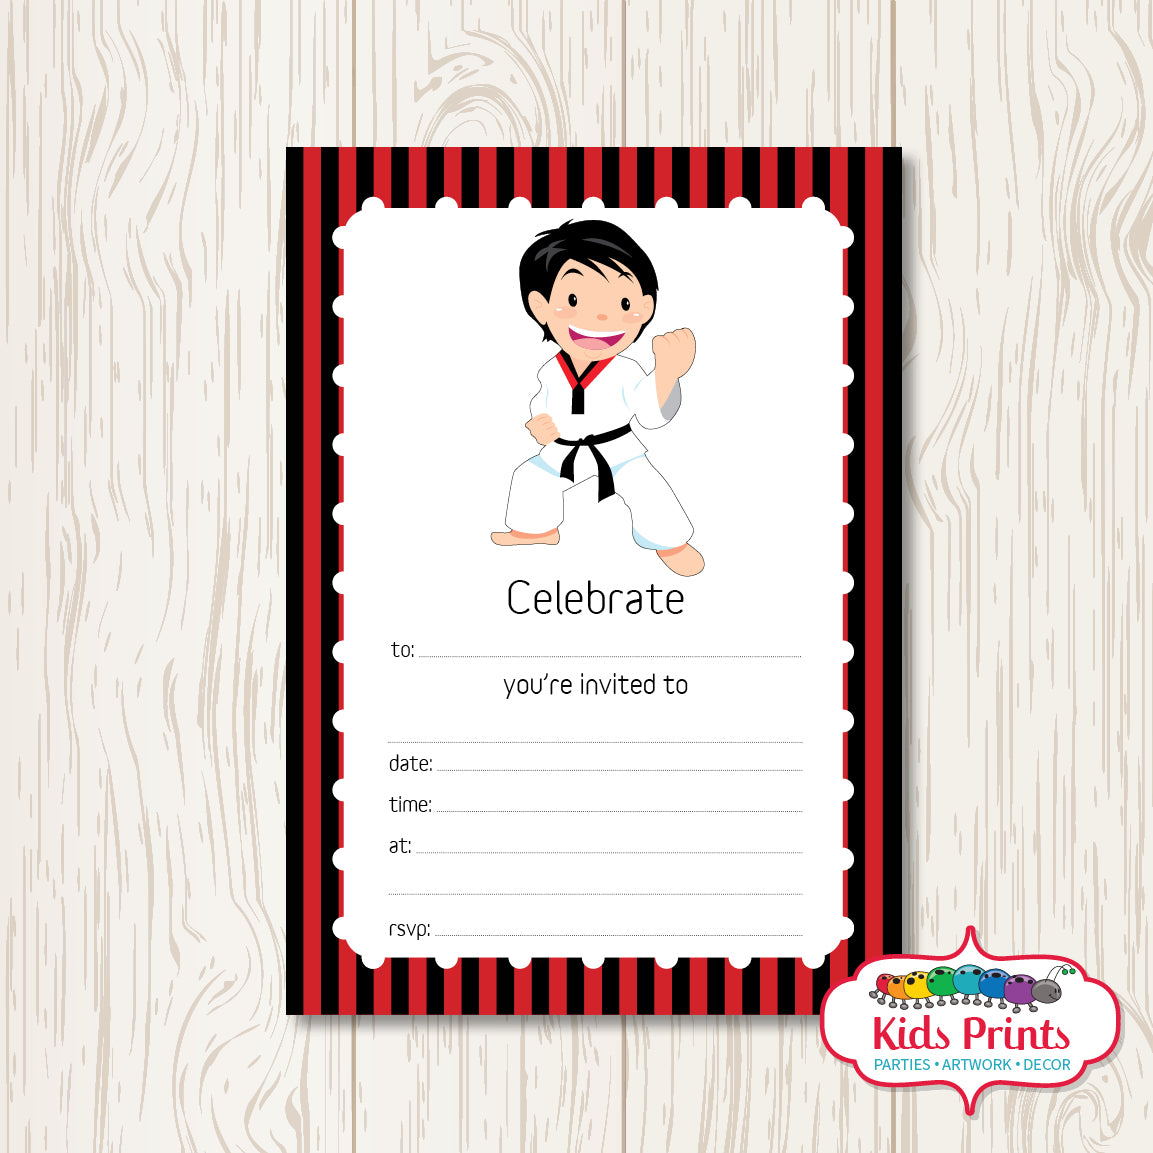 Taekwondo Printable Birthday Invitation - Kids Prints Online - kids wall art printable - nursery art printable - printable invitations - digital invitations - kids wall art - kids prints